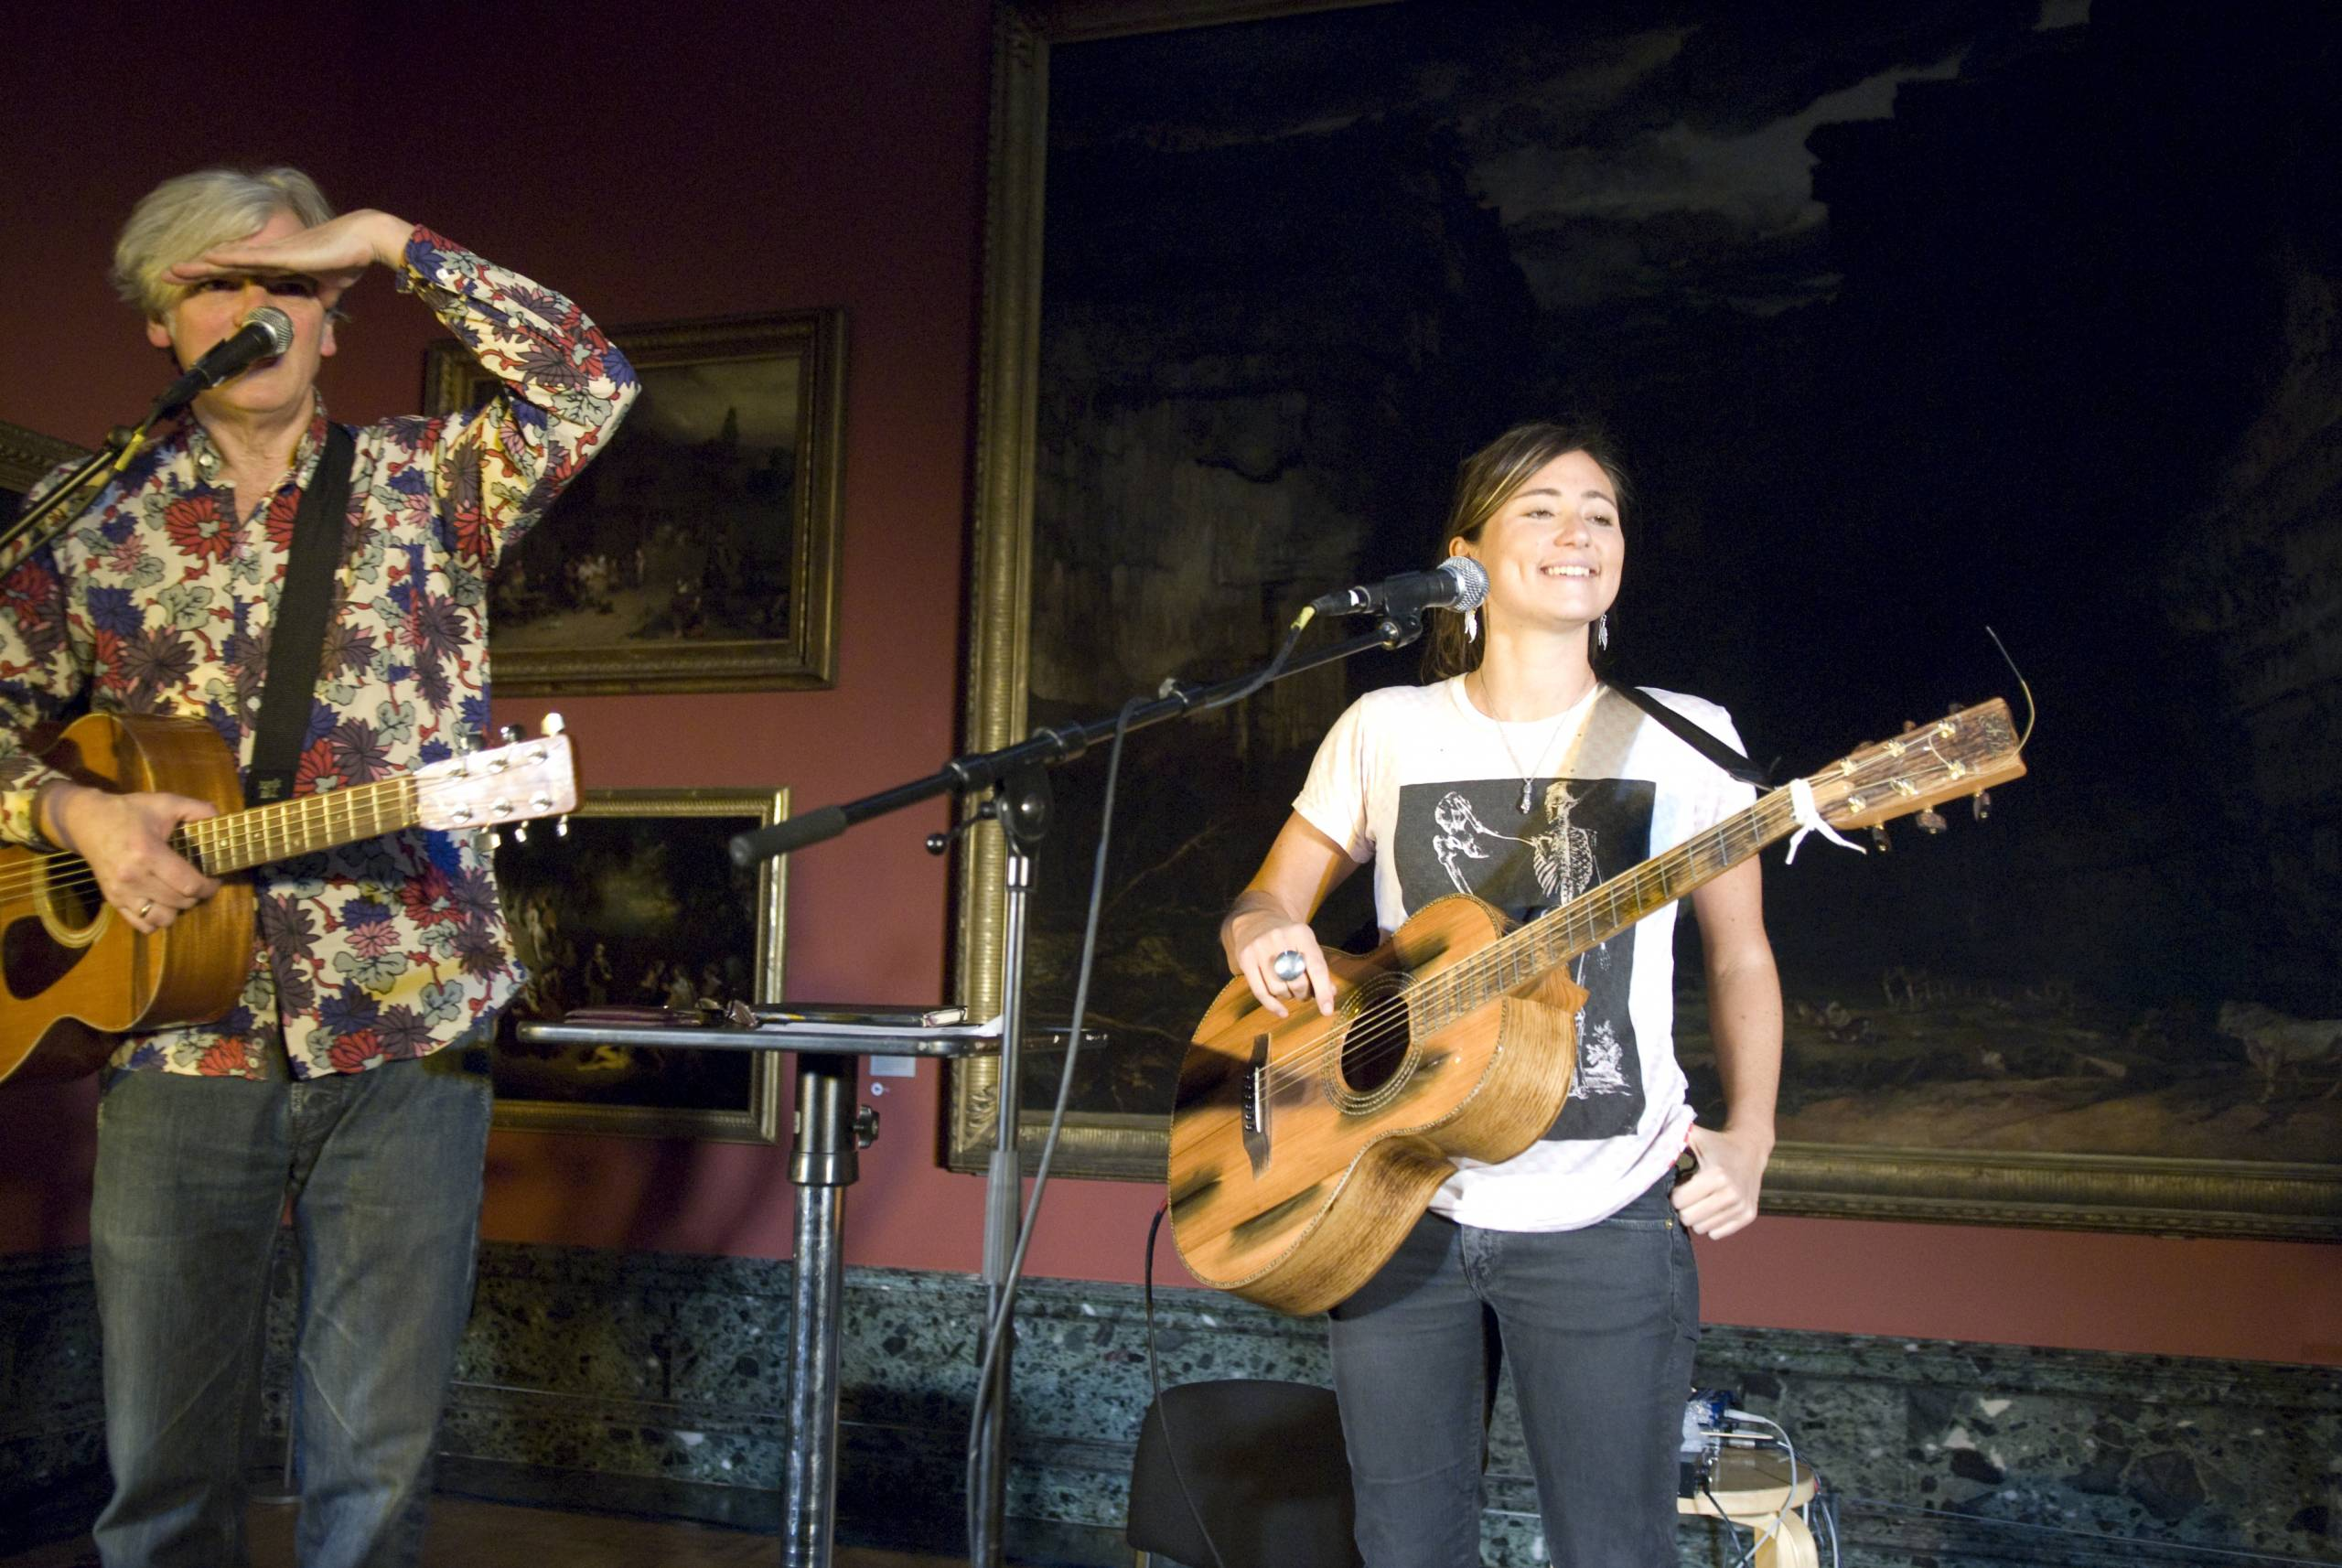 musicians perform in a gallery setting